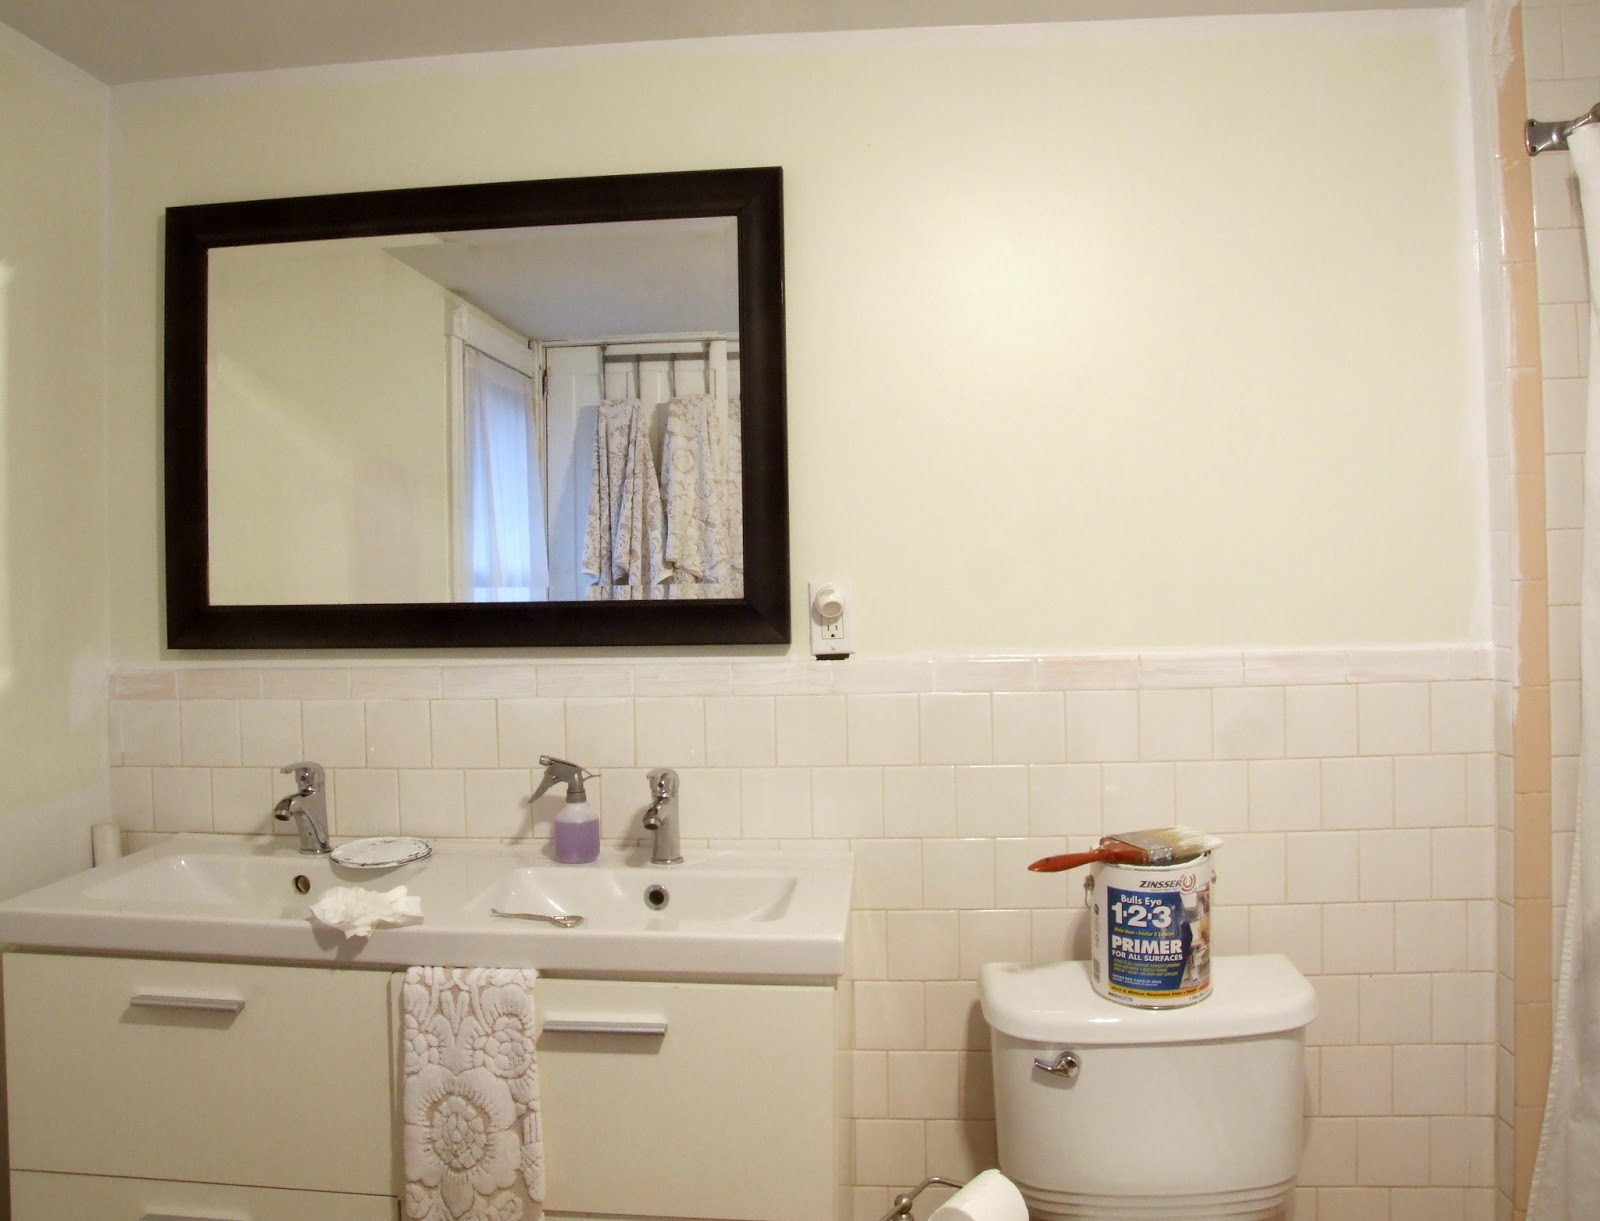 The Best Way To Paint Tile Don T 183 Little Victorian